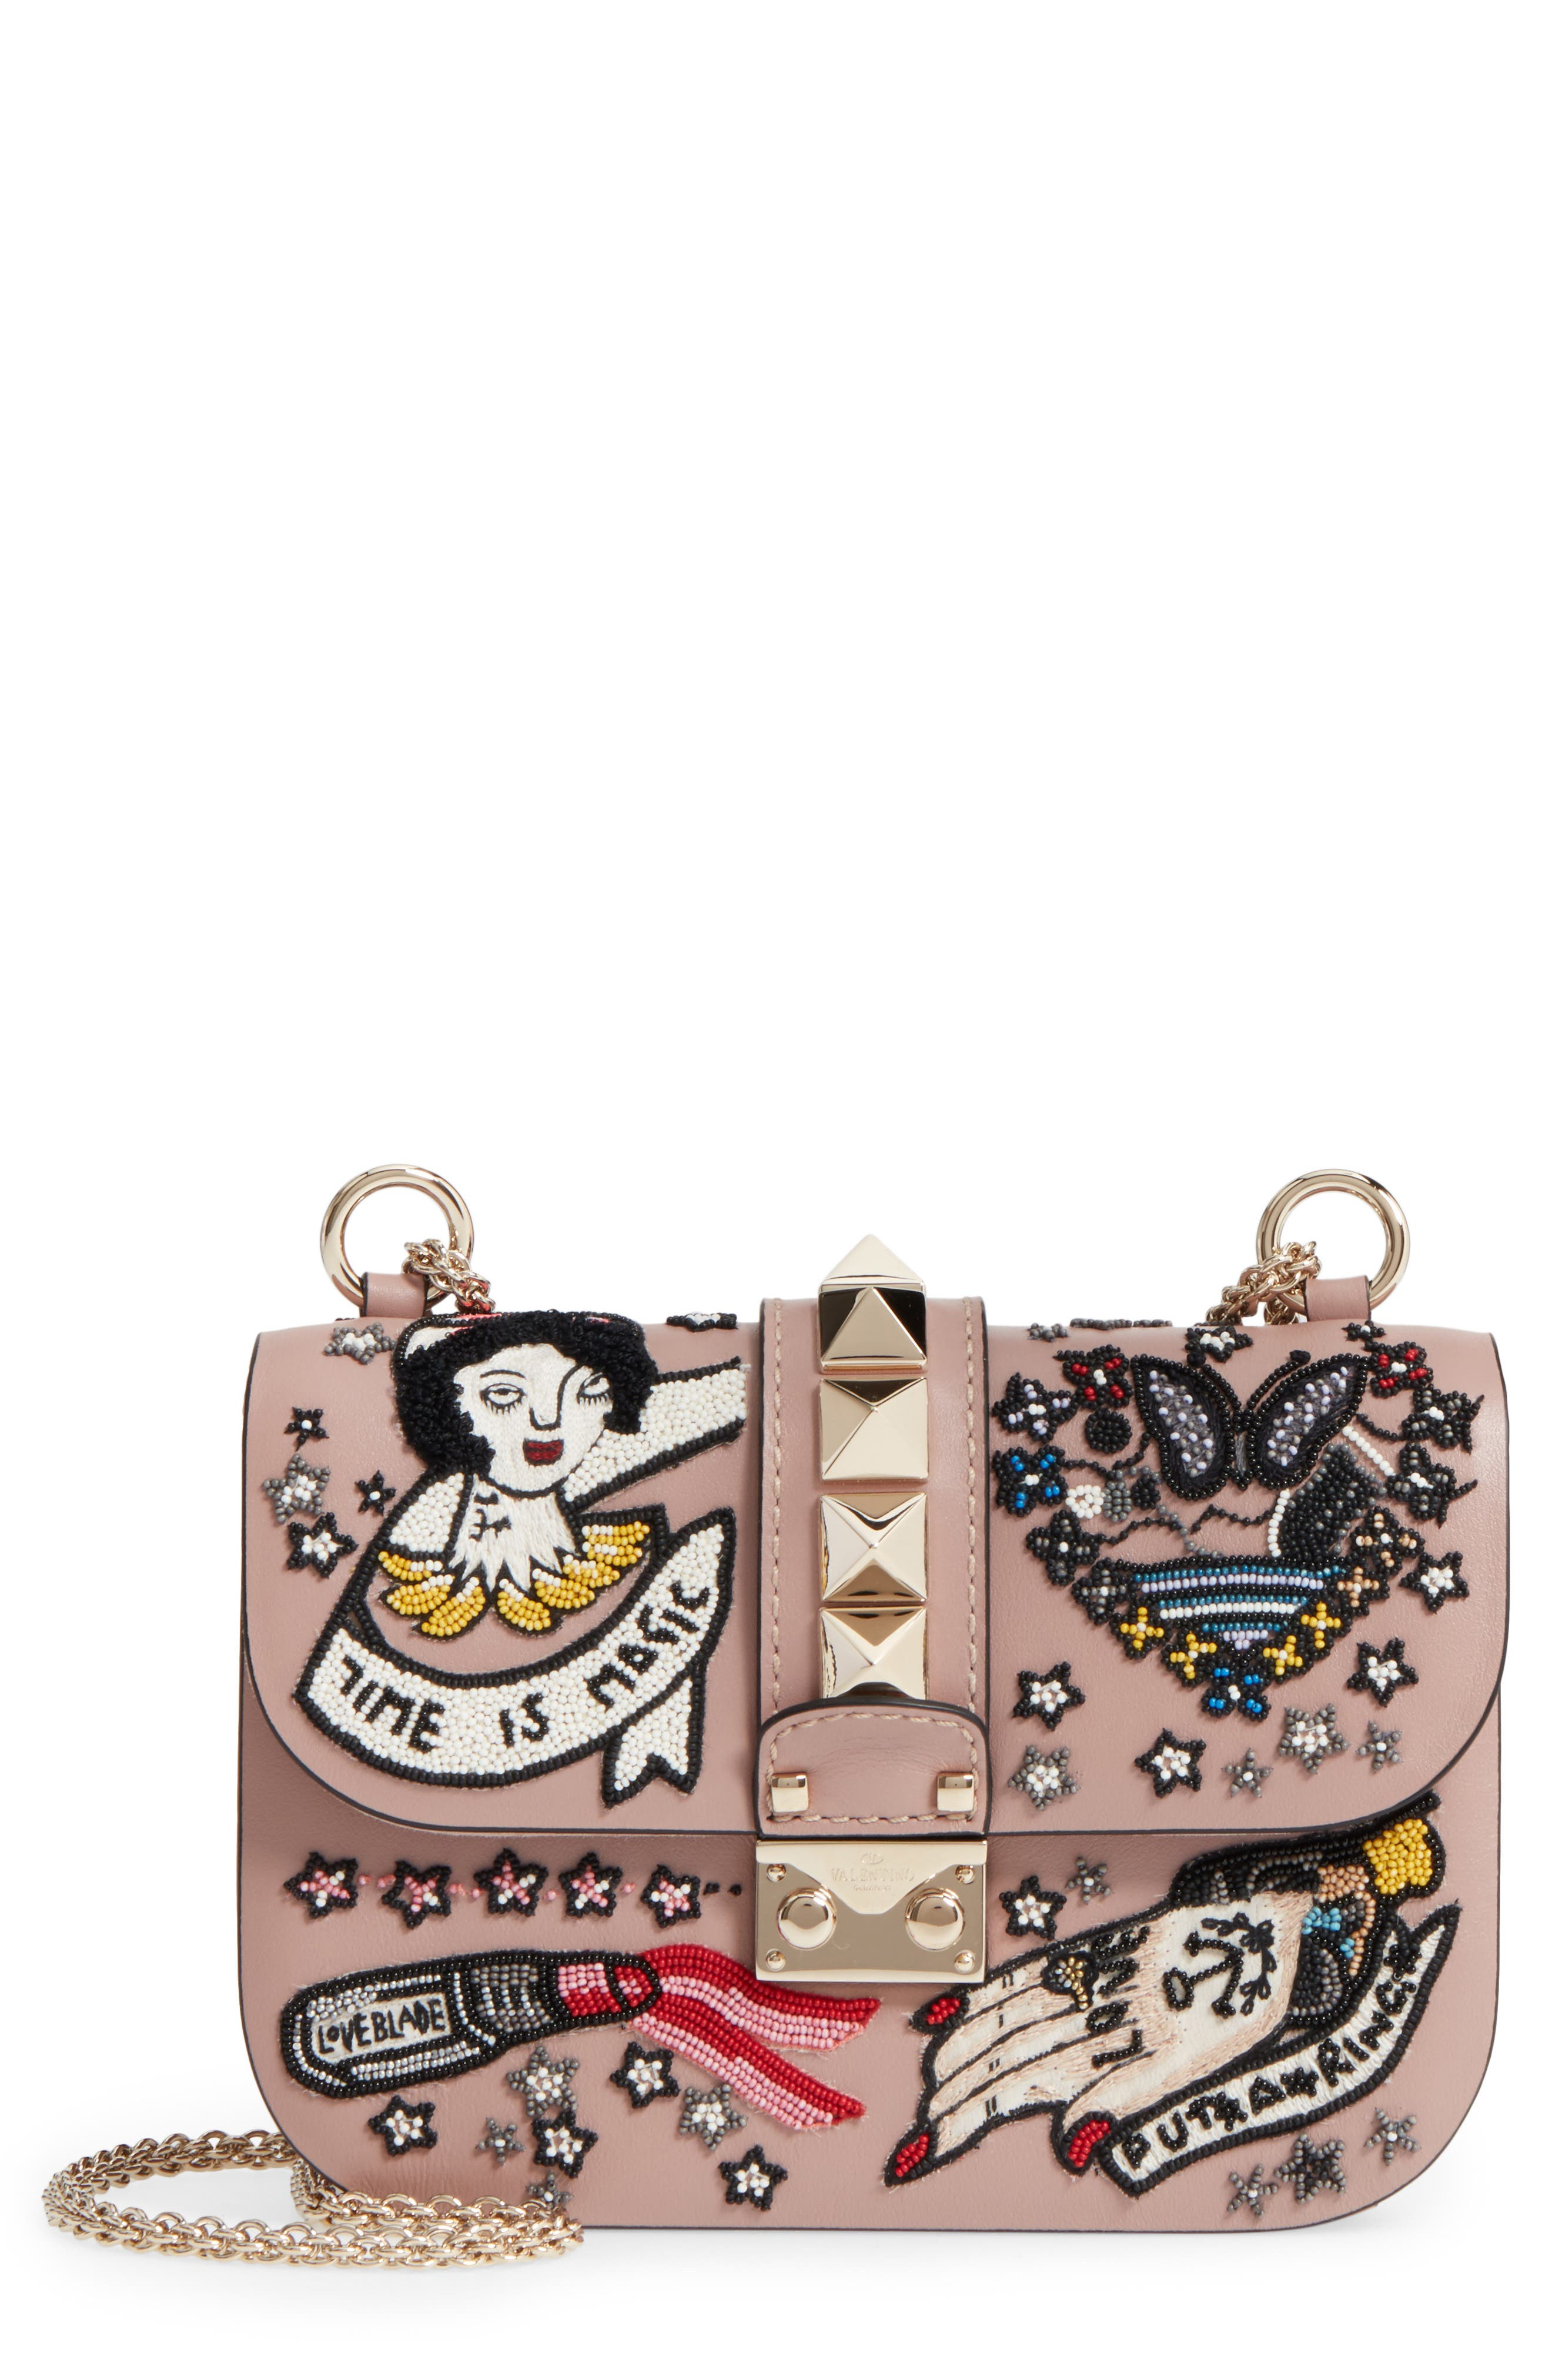 VALENTINO GARAVANI Small Time is Magic Embroidered Calfskin Leather Shoulder Bag